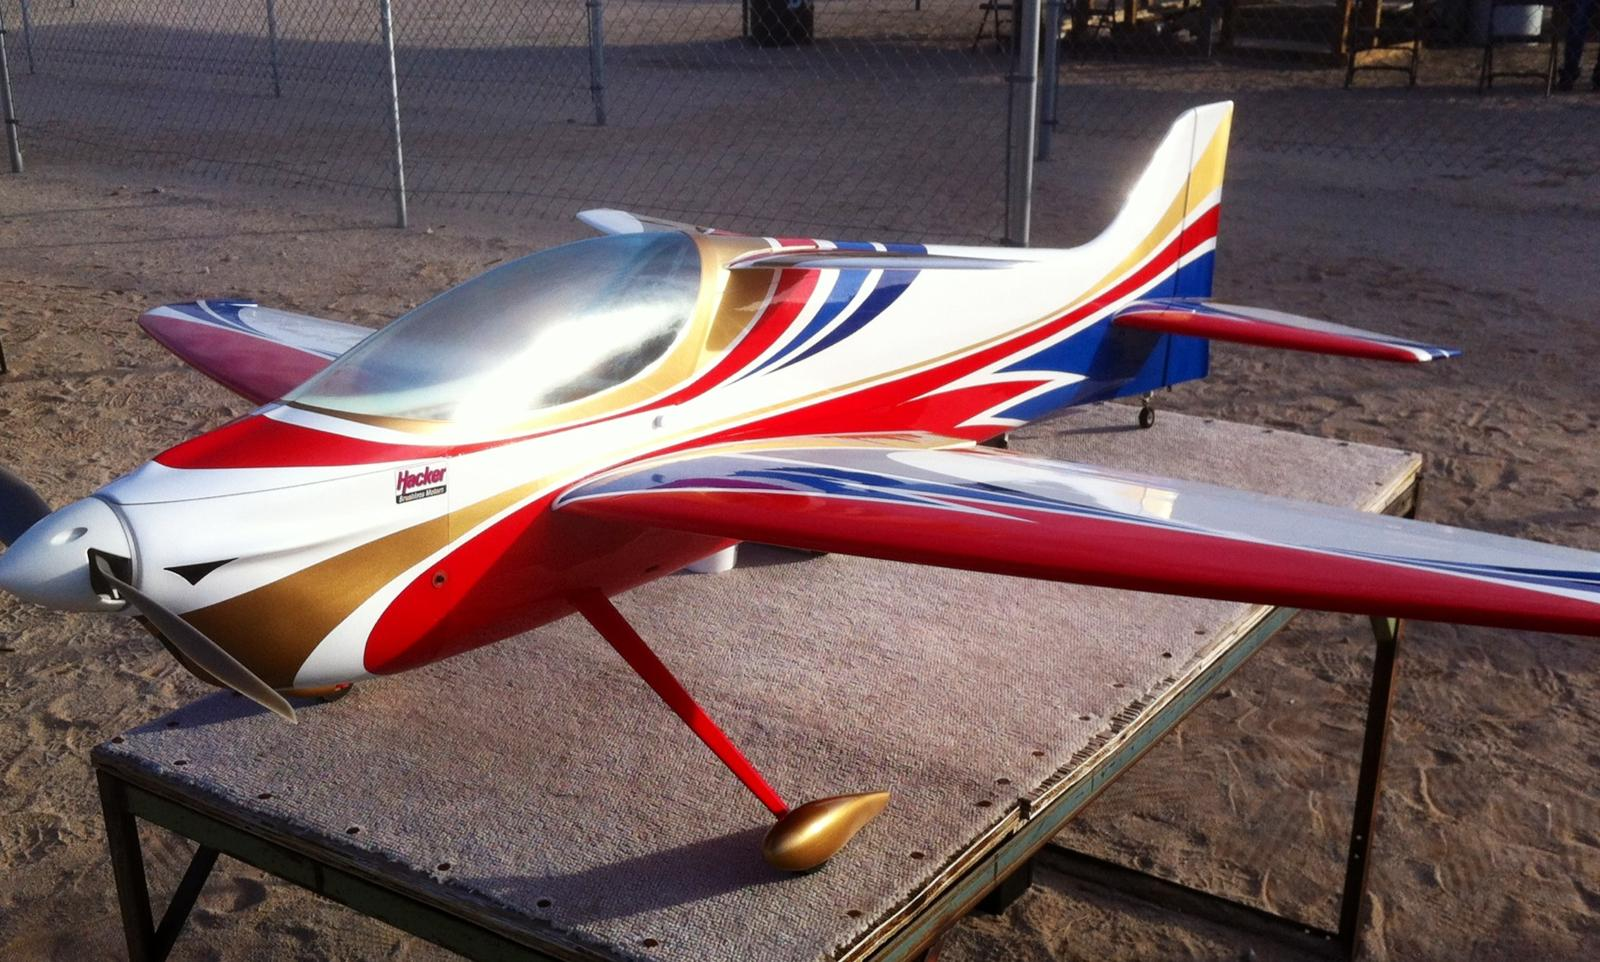 Sebarts New Pattern Ship Mythos Page 5 Rcu Forums Class Size Rc Electric 6 Channel 3d Rtf Helicopter The Exceedrc G2